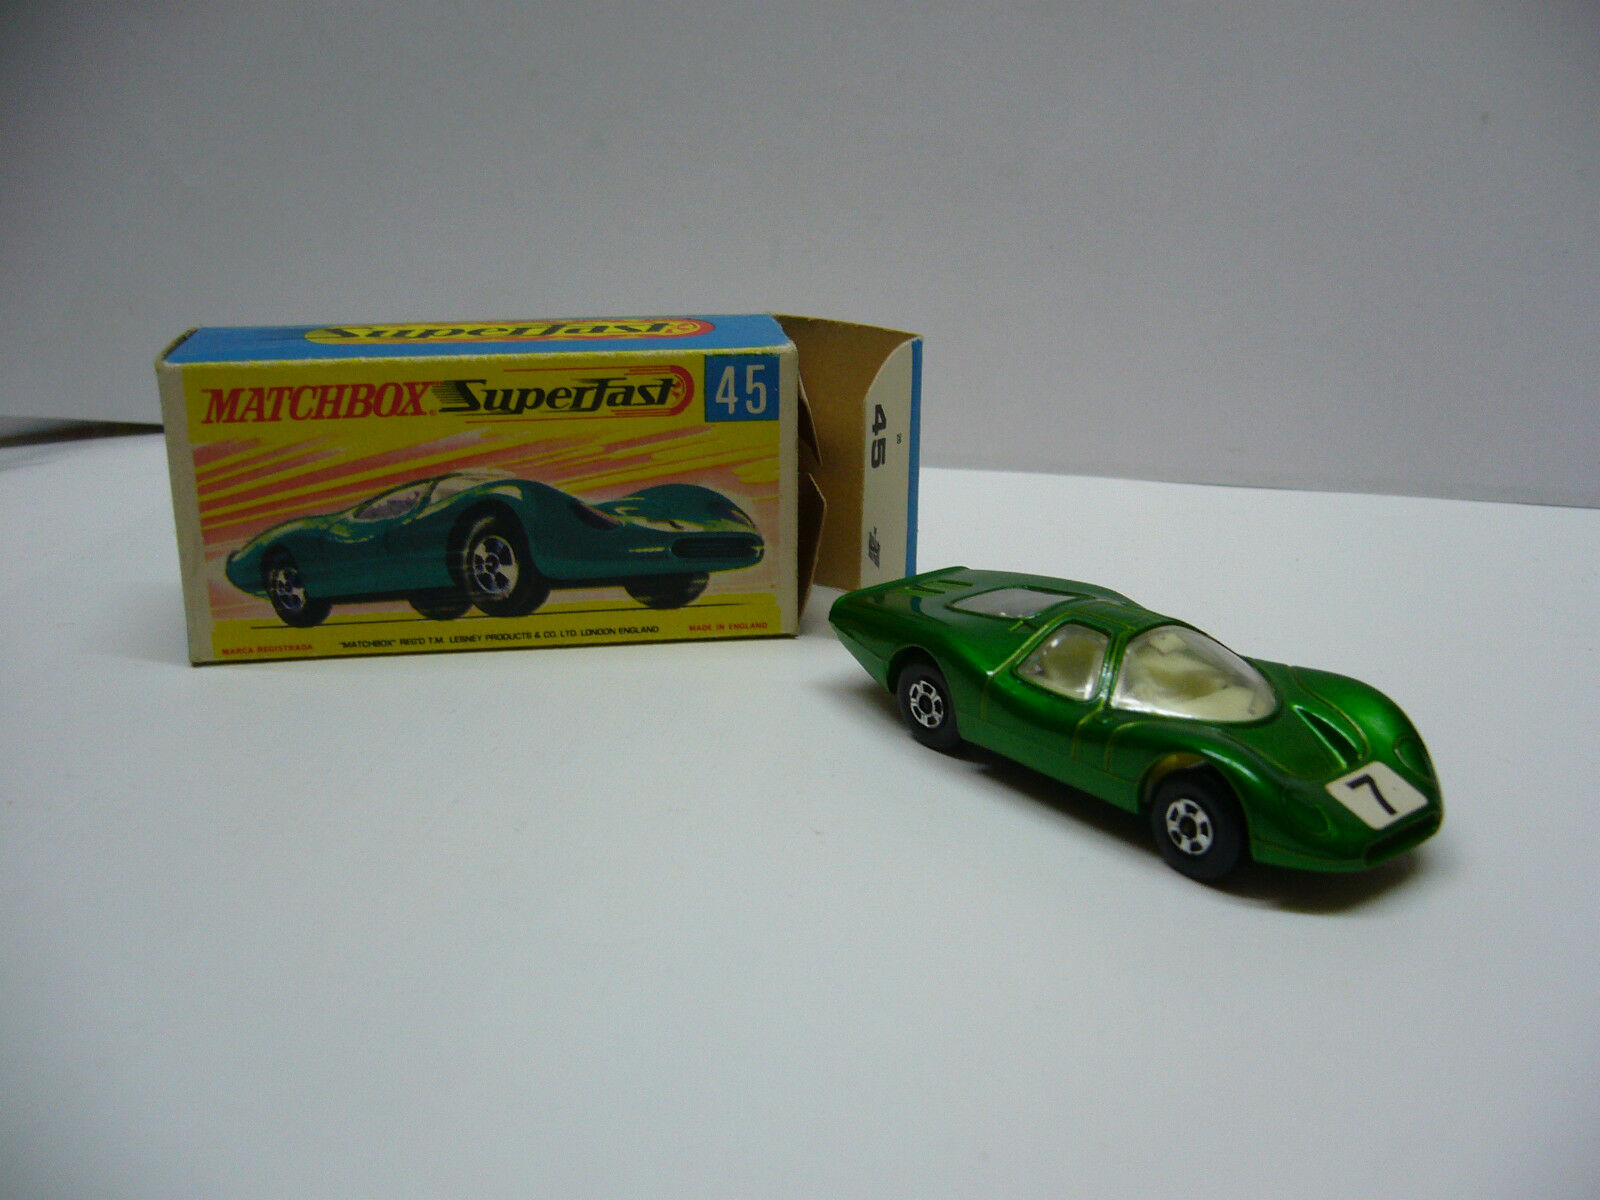 Matchbox Superfast MB 45 Ford Group 6 with Rectangular 7 Dark-Made in England